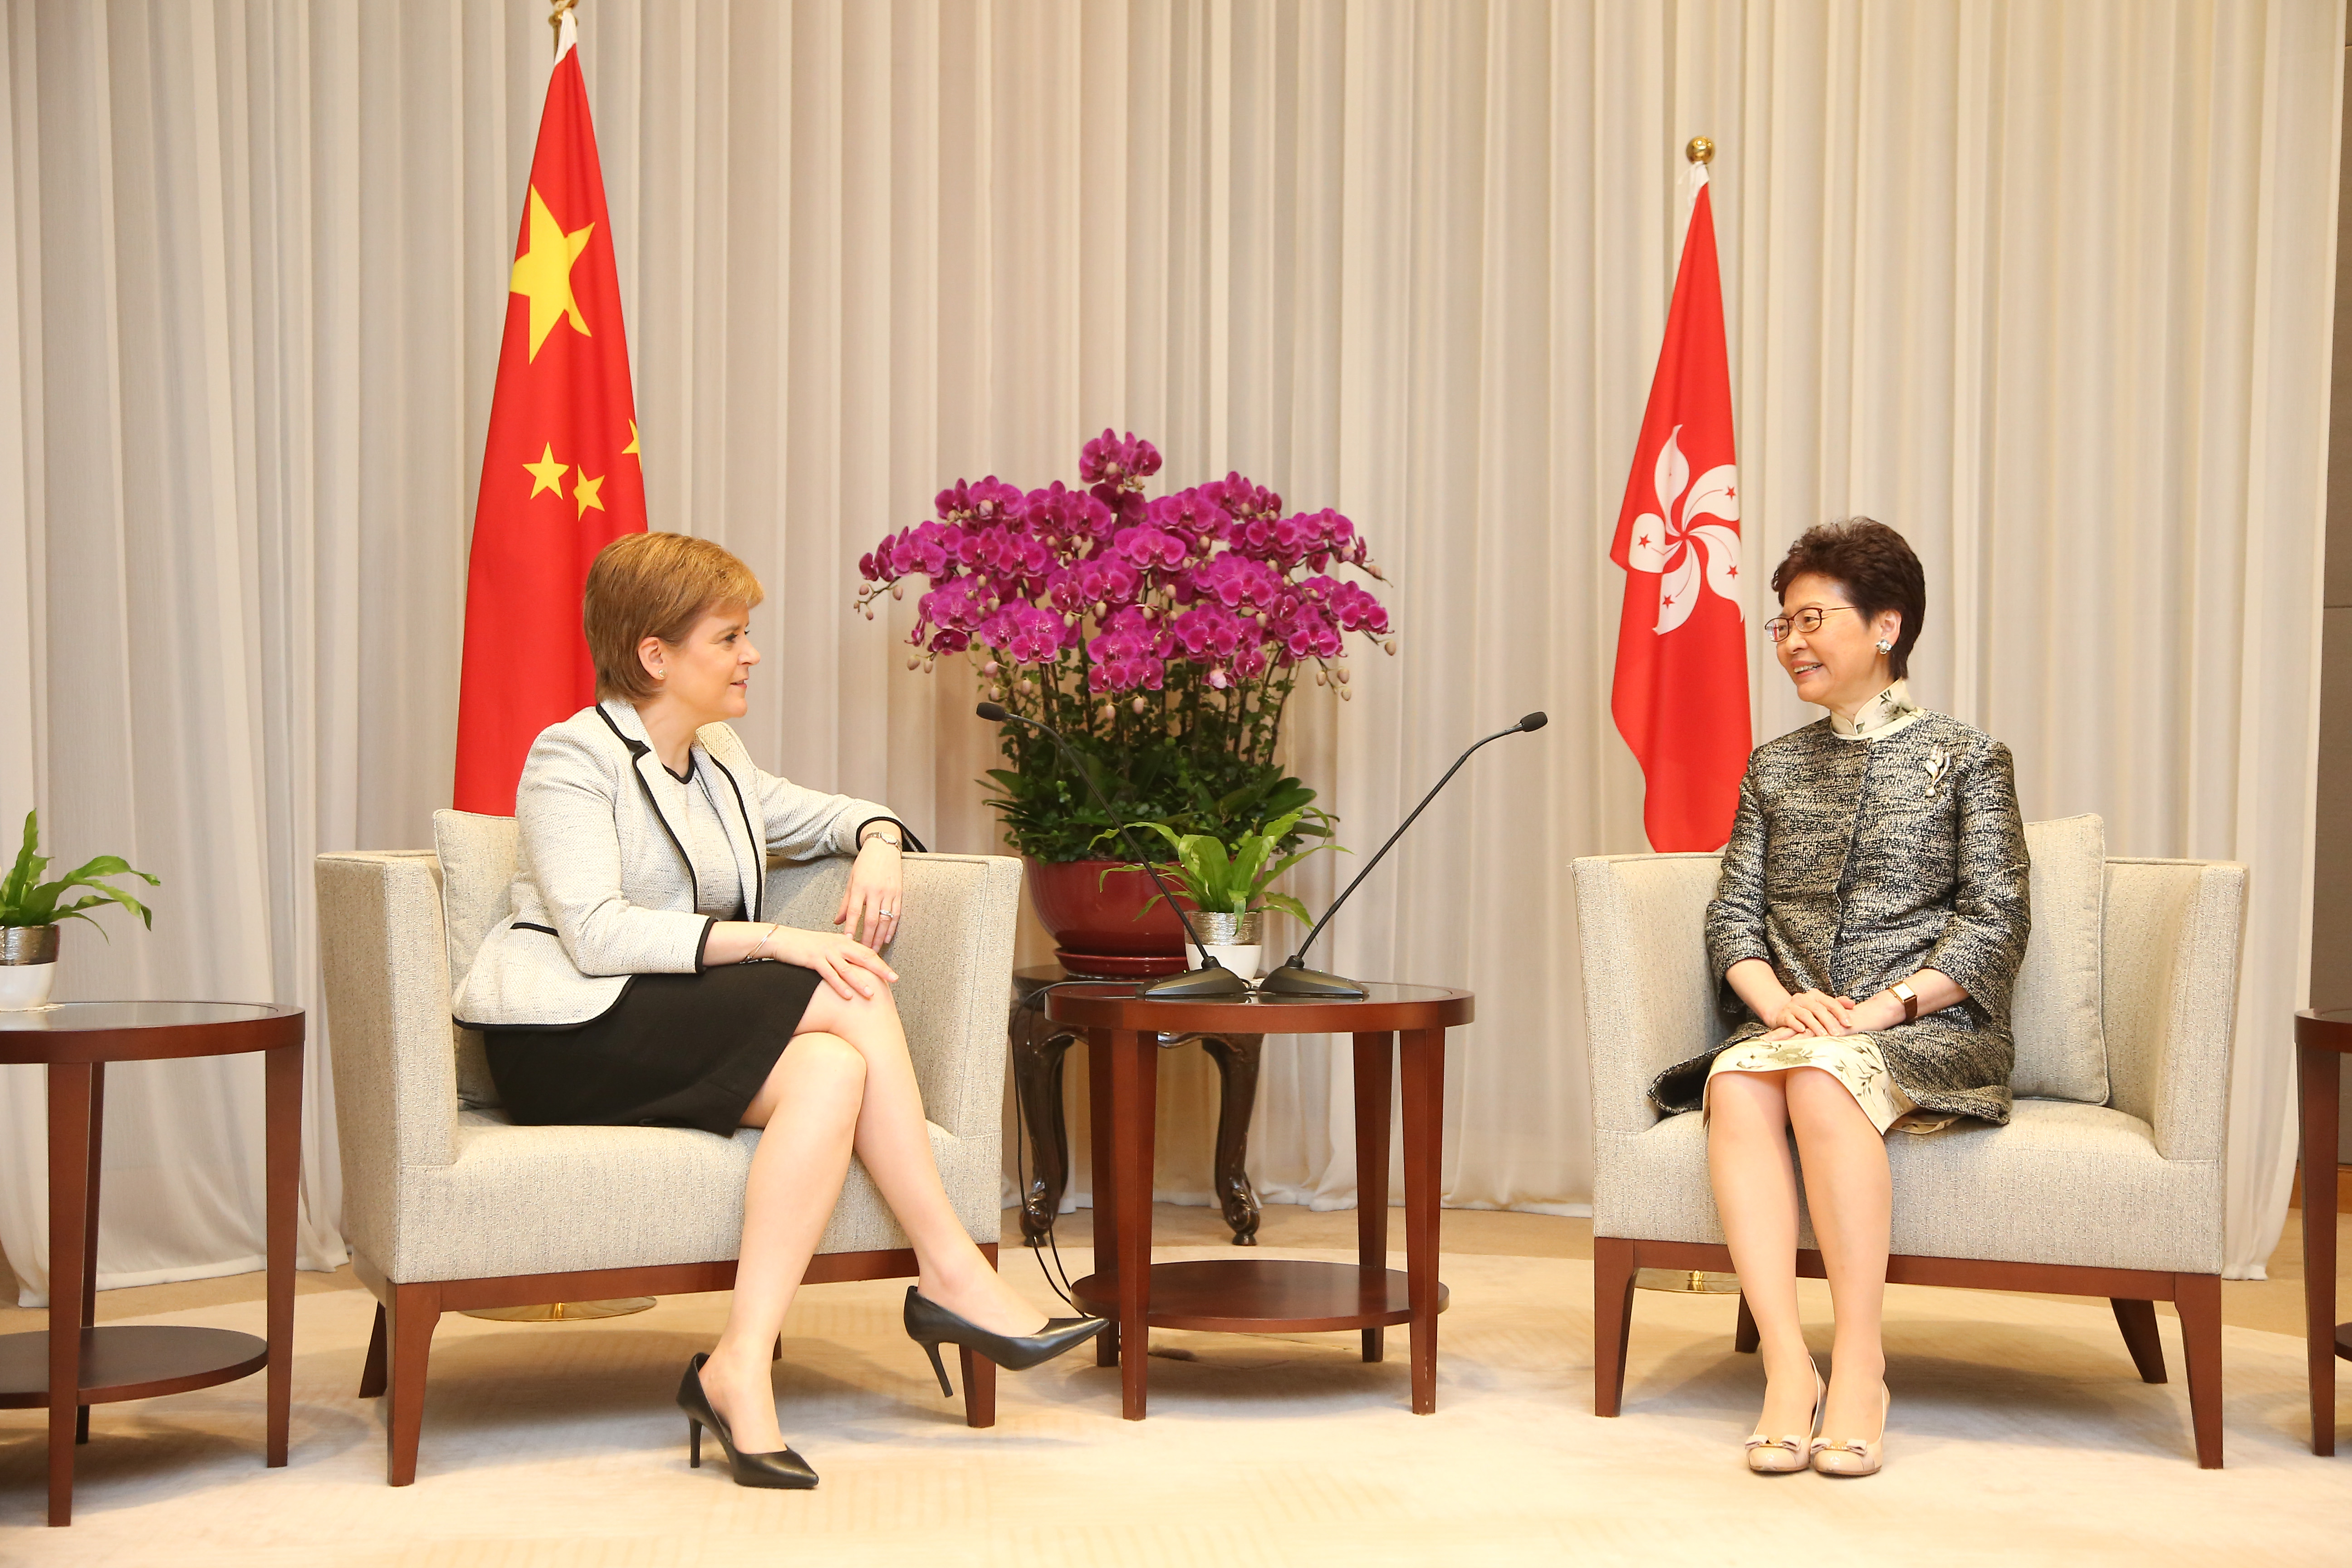 Chief Executive Carrie Lam of Hong Kong (photo credit: First Minister of Scotland/flickr)